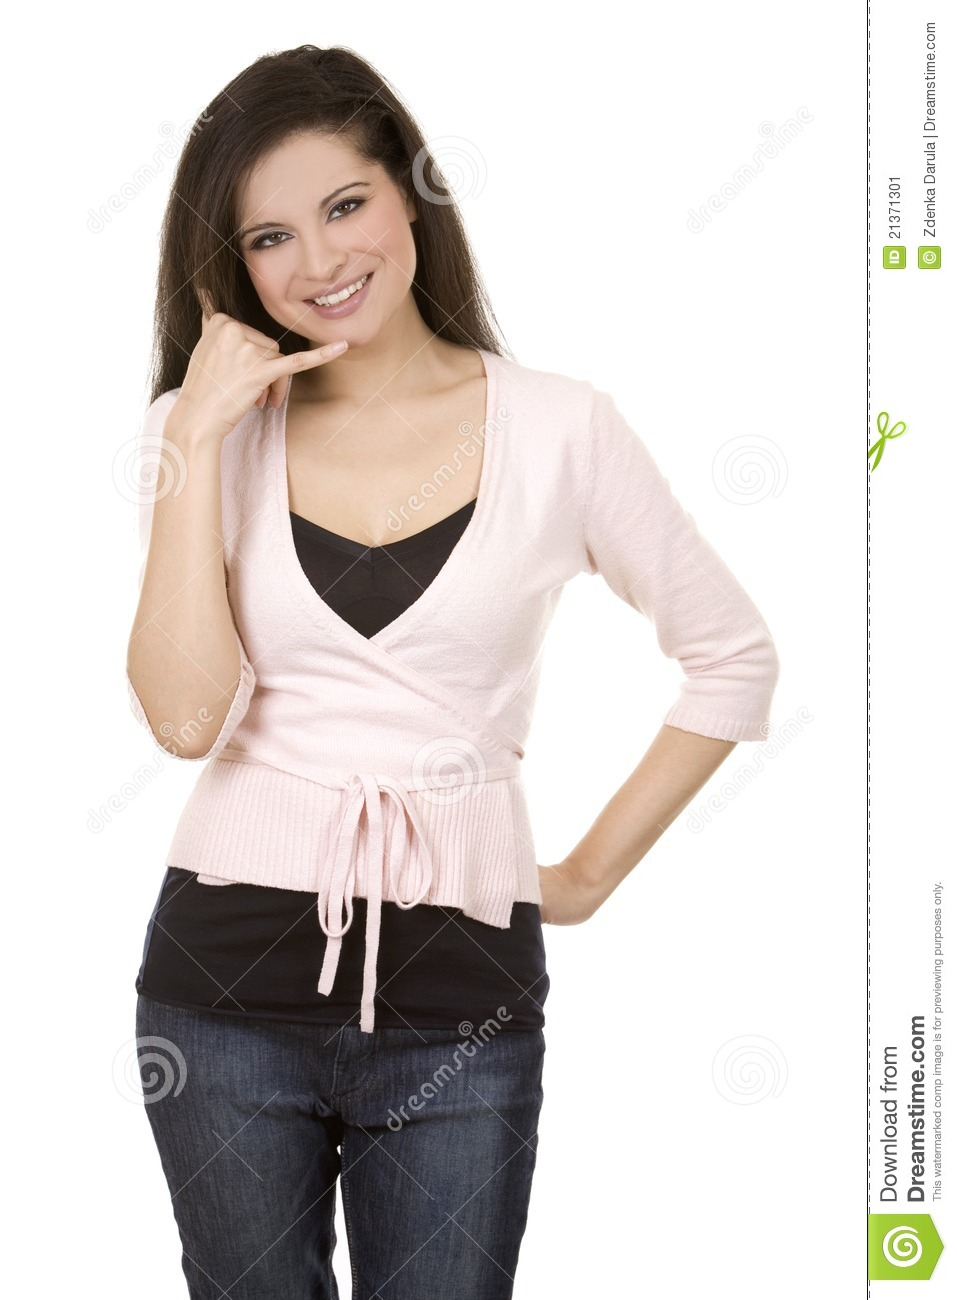 Call Me Gesture Stock Image - Image: 21371301